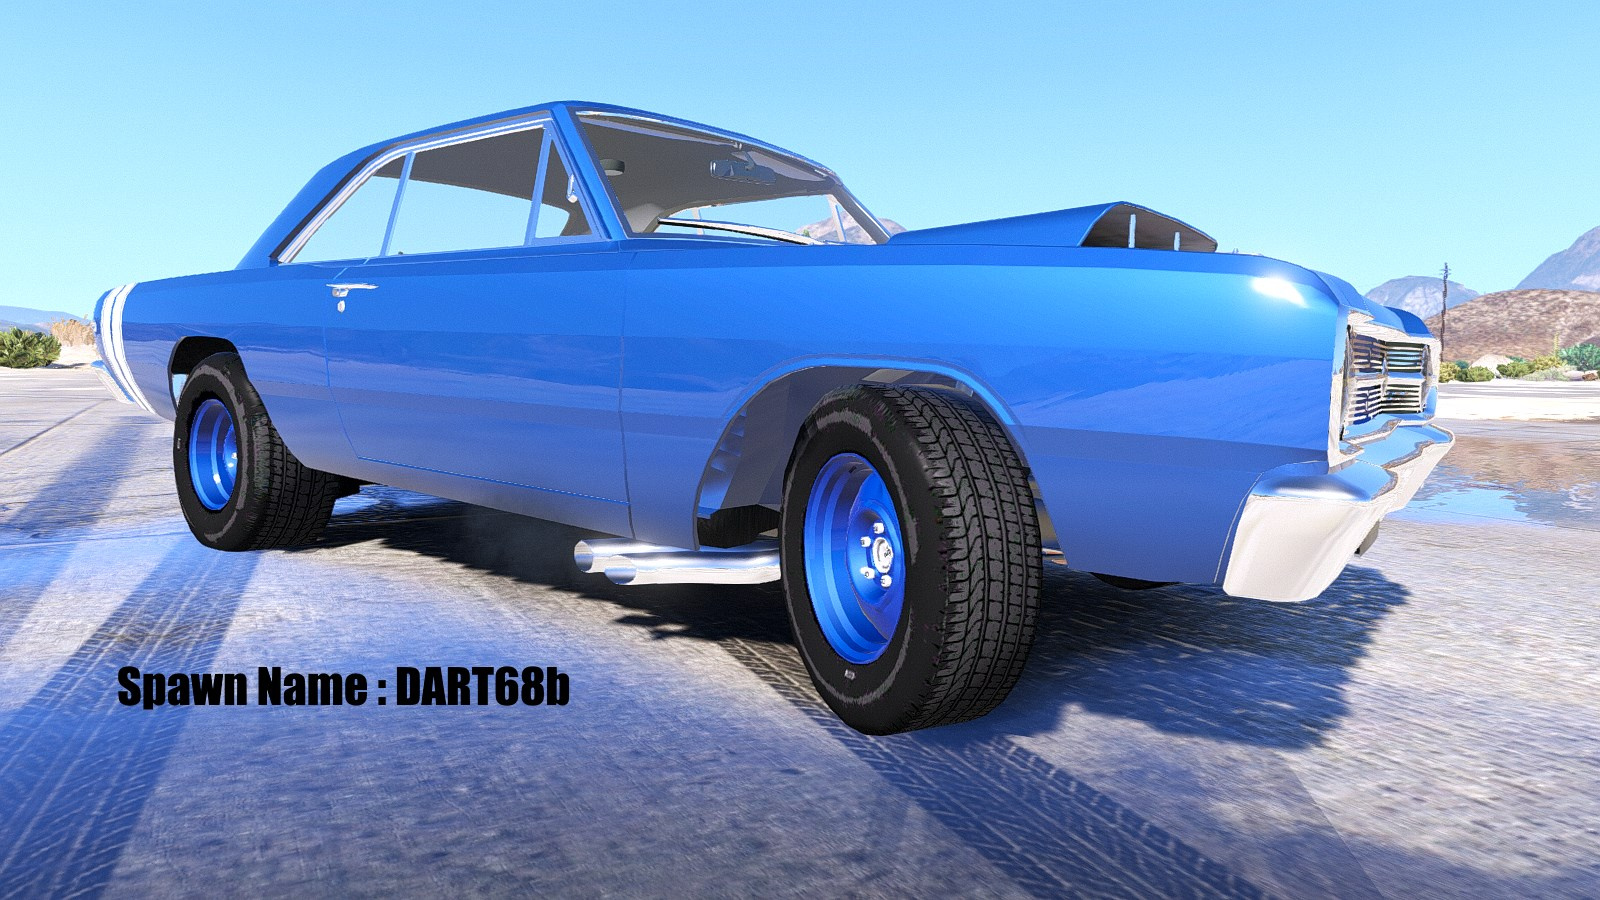 1968 Dodge Dart Hemi Super Stock Add On Replace Animated Charger Drag Car 8abd4f Drag2 B7210b